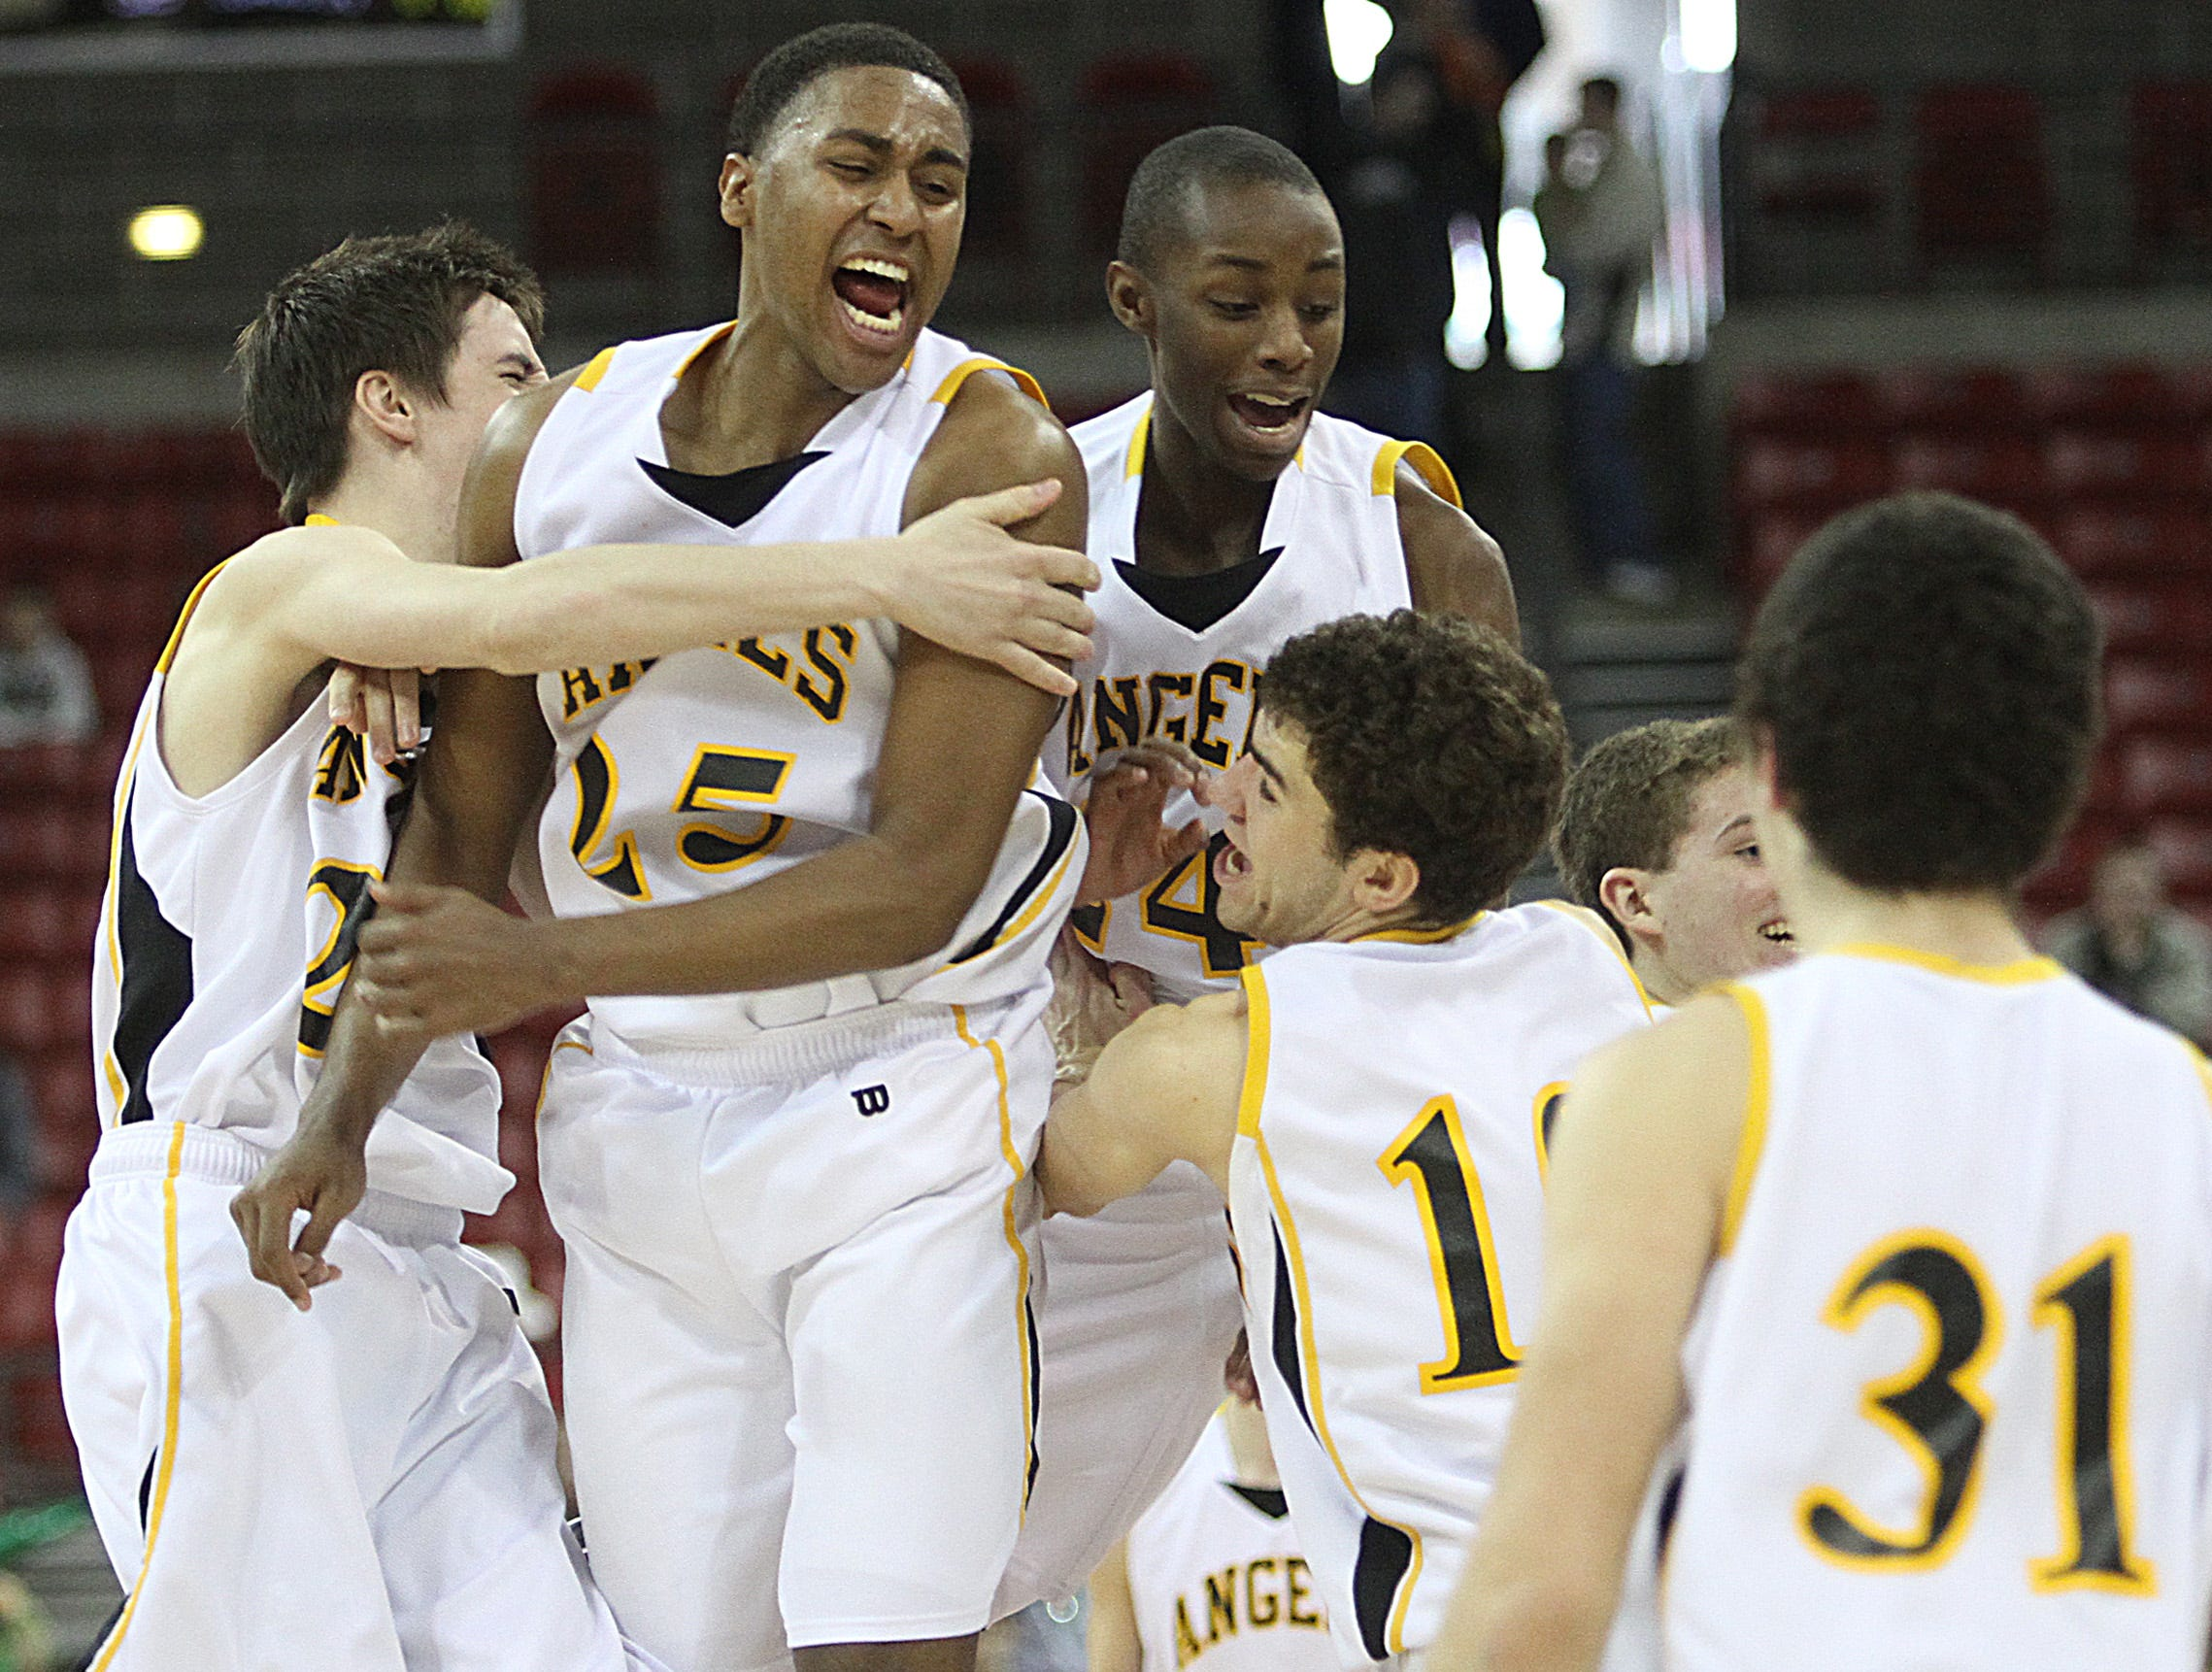 WIAA Division 3 championship game Racine St. Catherine's players #23 Nick Moes #25 Steve McWhorter #24 Antonio Stafford  celebrate their state D3 title on the floor of the Kohl Center.